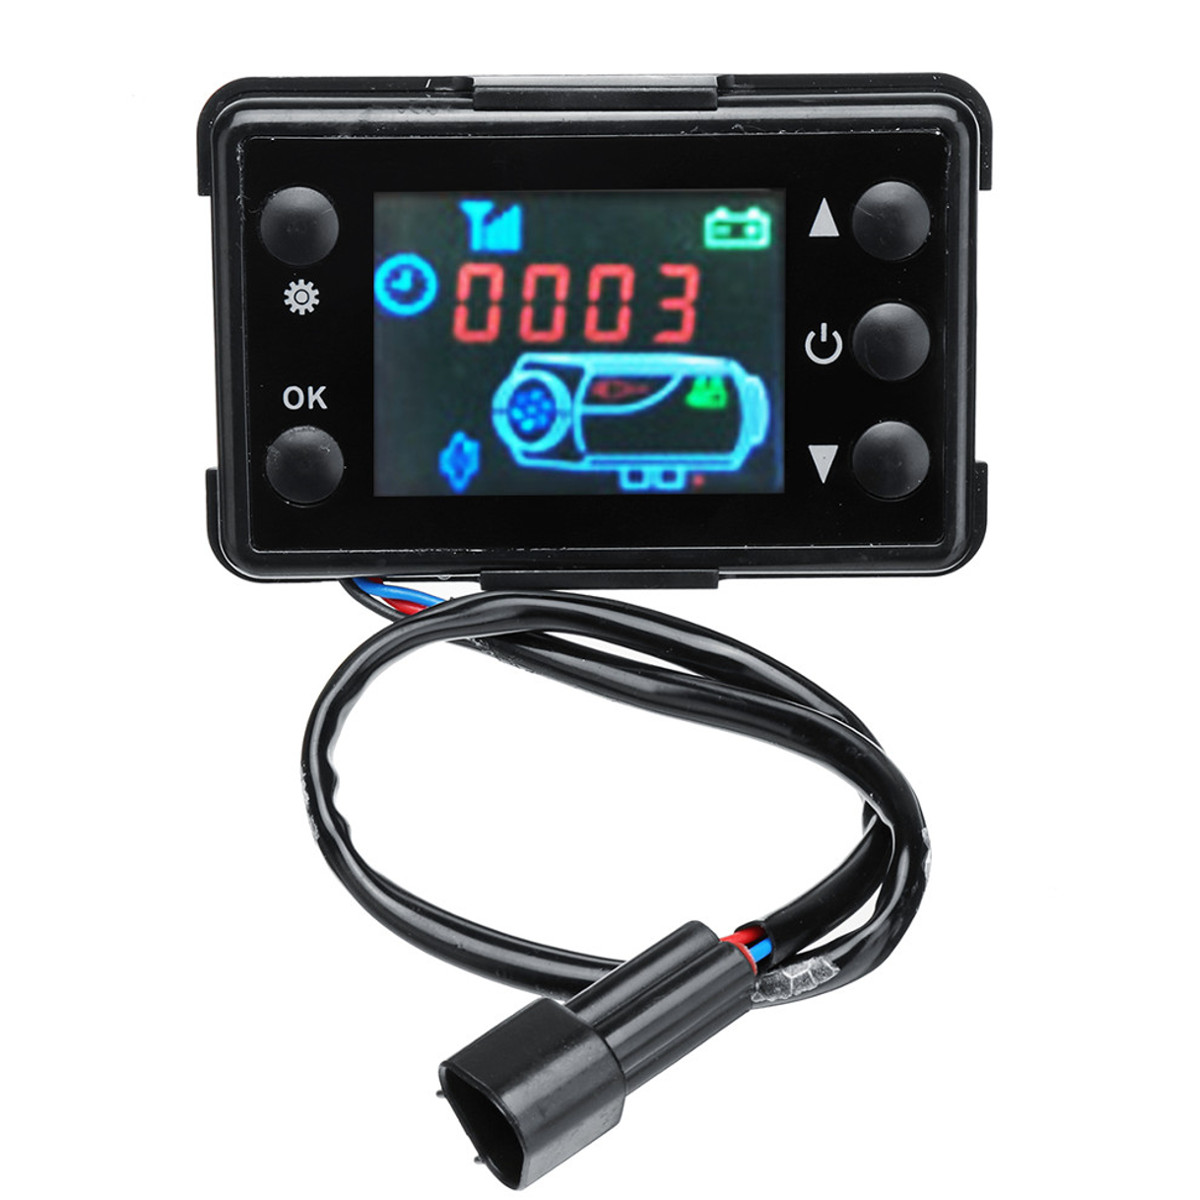 Electric Vehicle Parts Controllers 12v/24v 3/5kw Lcd Monitor Parking Heater Switch Car Heating Device Controller Universal For Car Track Air Heater